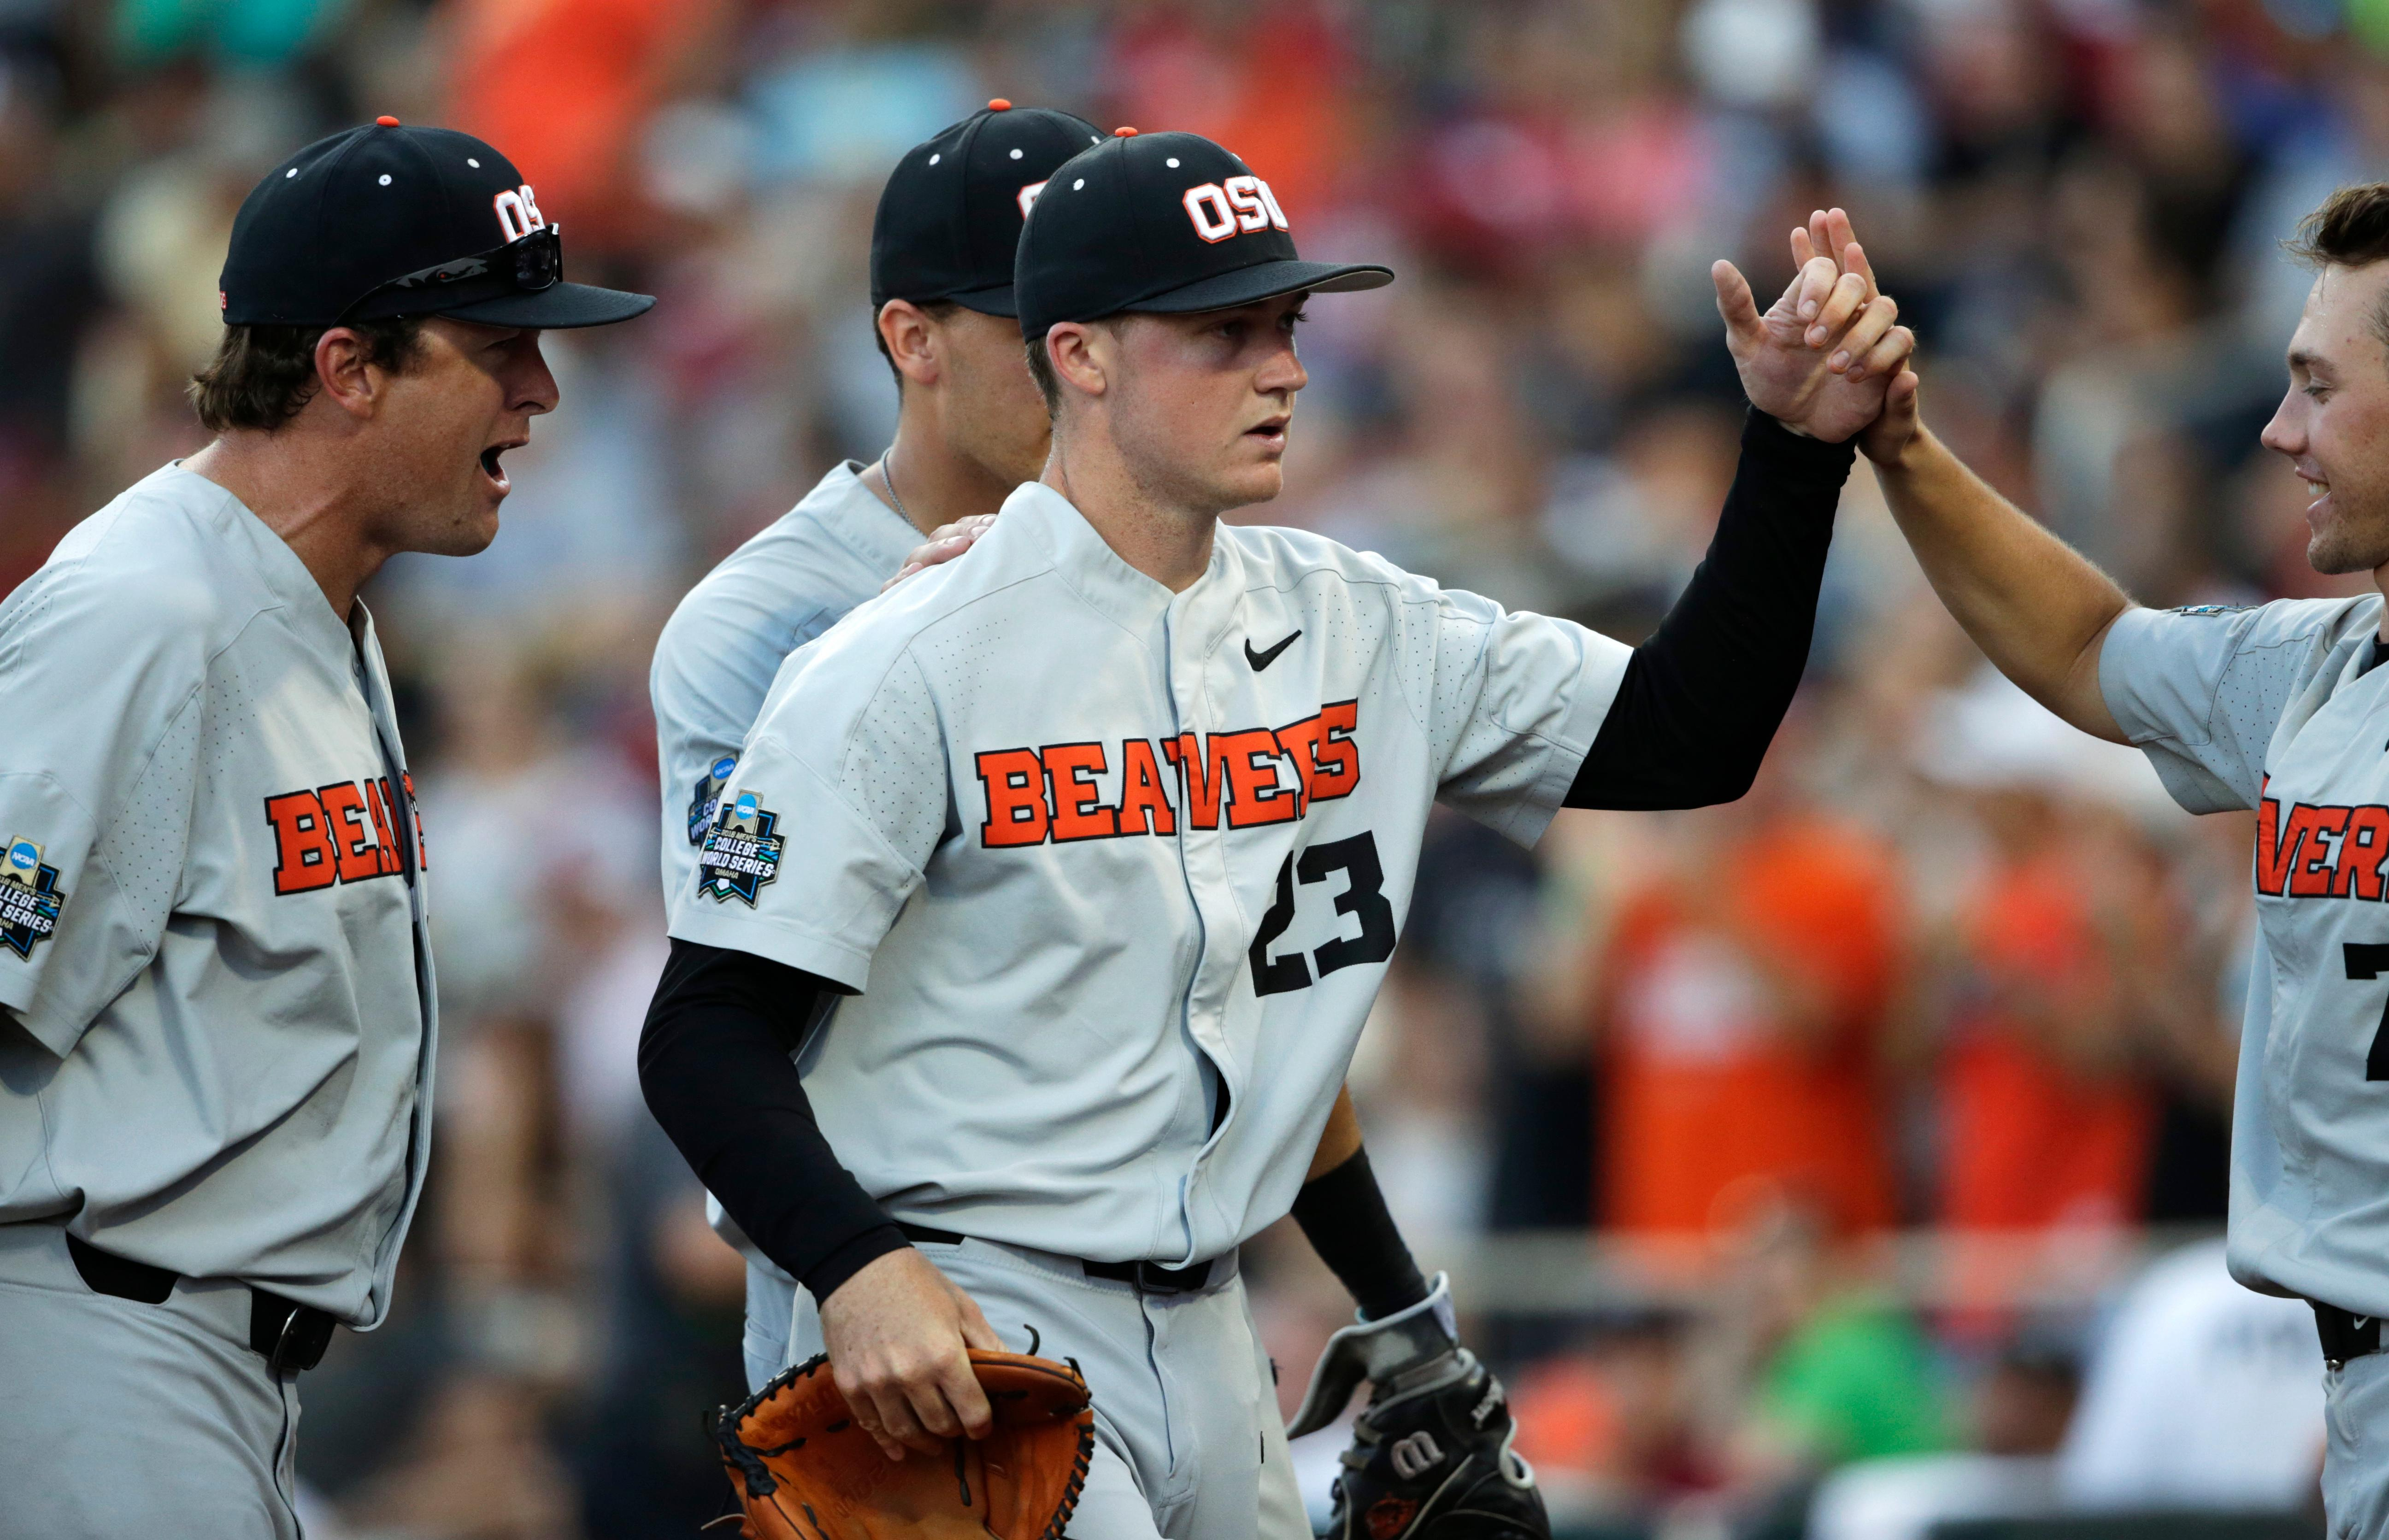 Oregon State pitcher Kevin Abel, center, is greeted by teammates at the end of the eighth inning of Game 3 against Arkansas in the NCAA College World Series baseball finals, Thursday, June 28, 2018, in Omaha, Neb. (AP Photo/Nati Harnik)